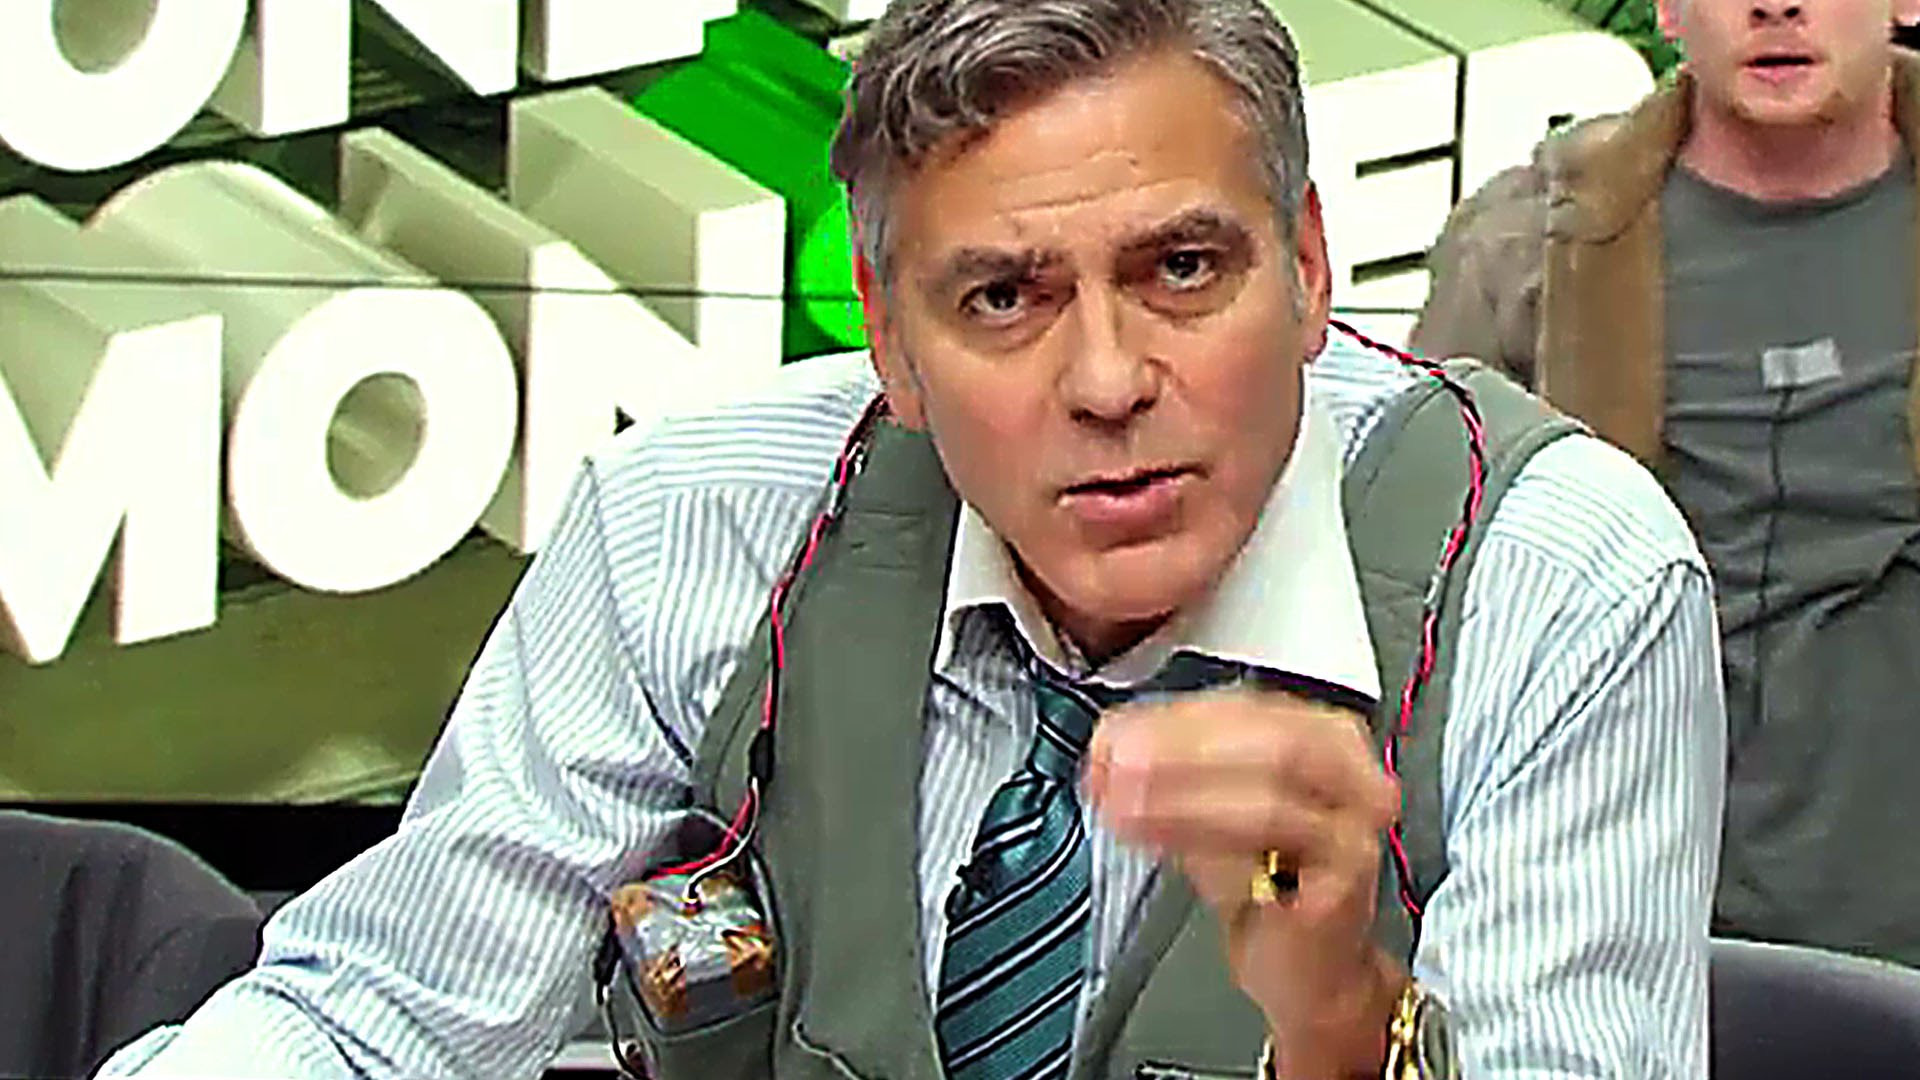 Money Monster - Dir: Jodie Foster